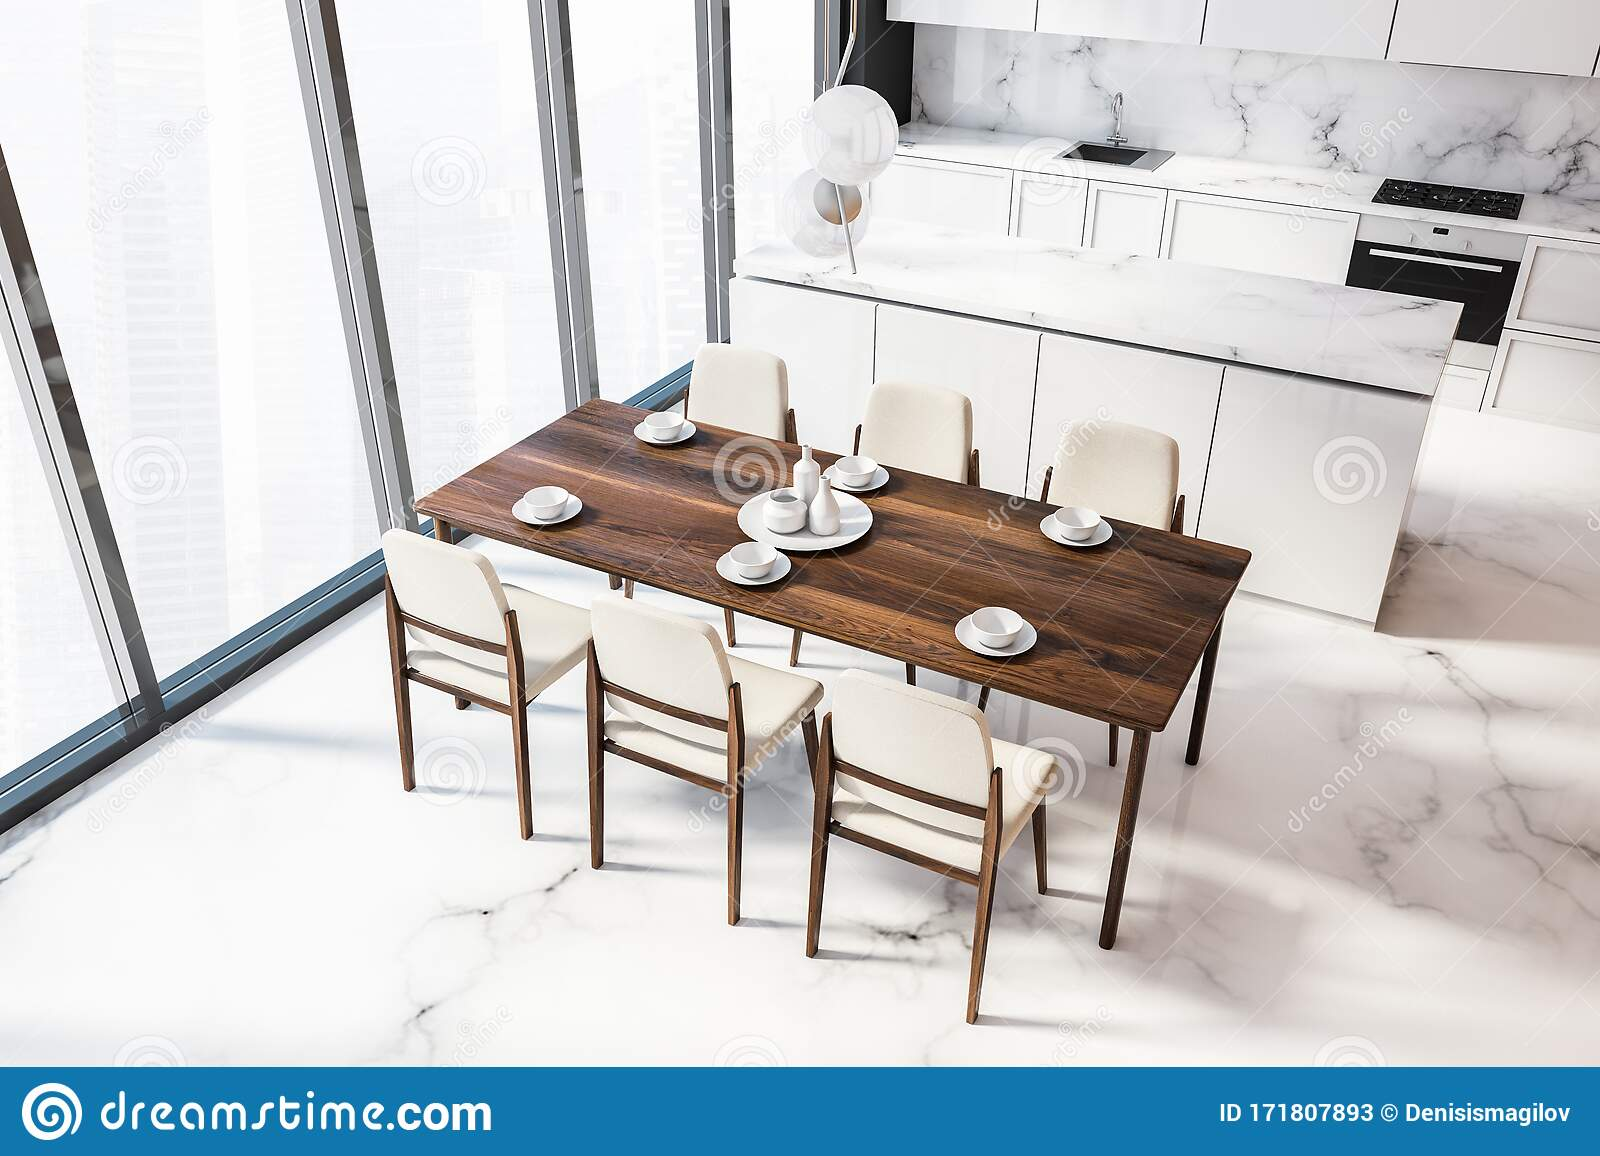 White Marble Kitchen With Table, Top View Stock Illustration ...